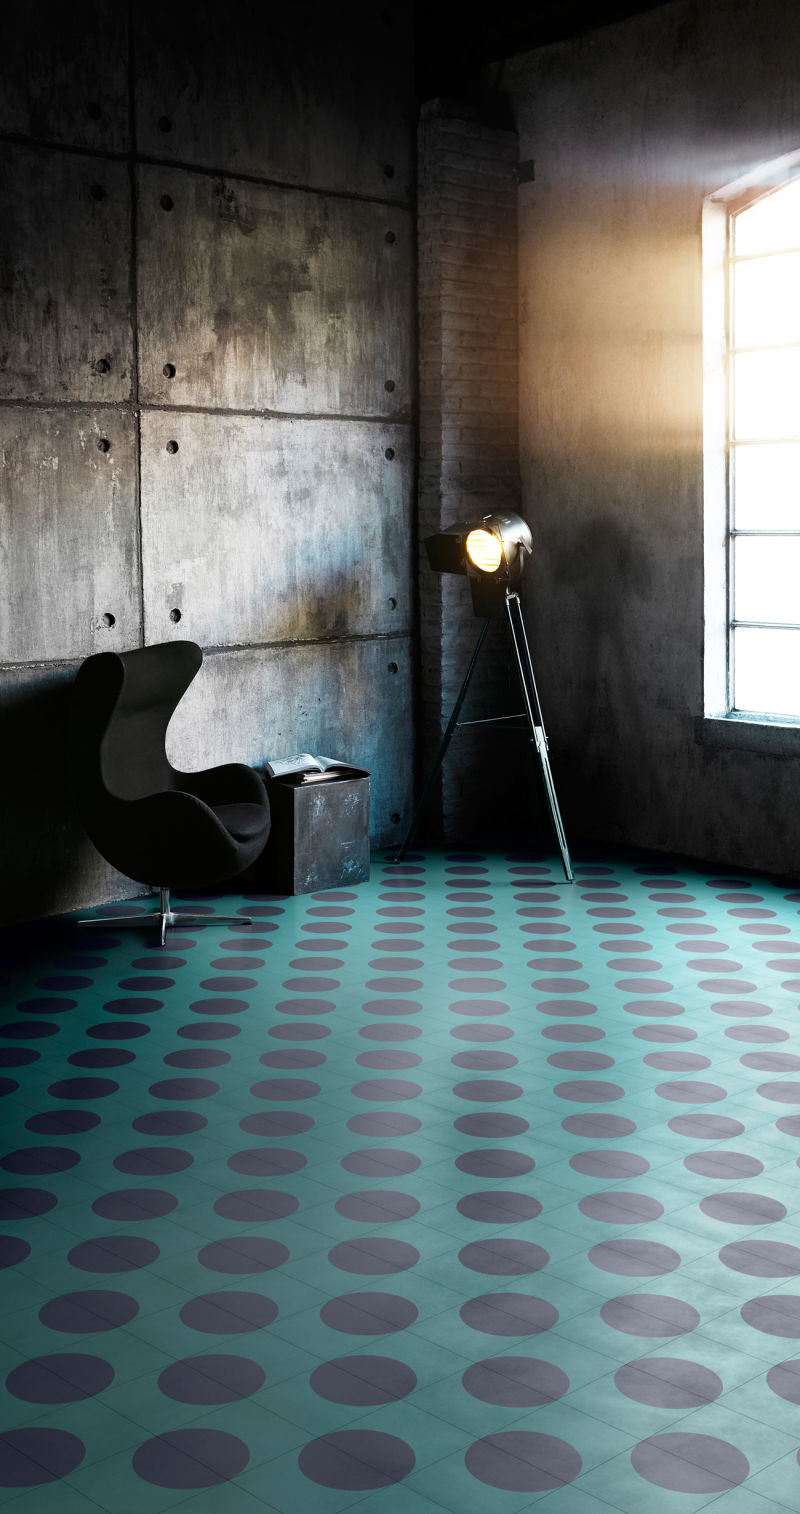 Bisazza-Cementiles_Dot-Design_design-INDIA-MAHDAVI